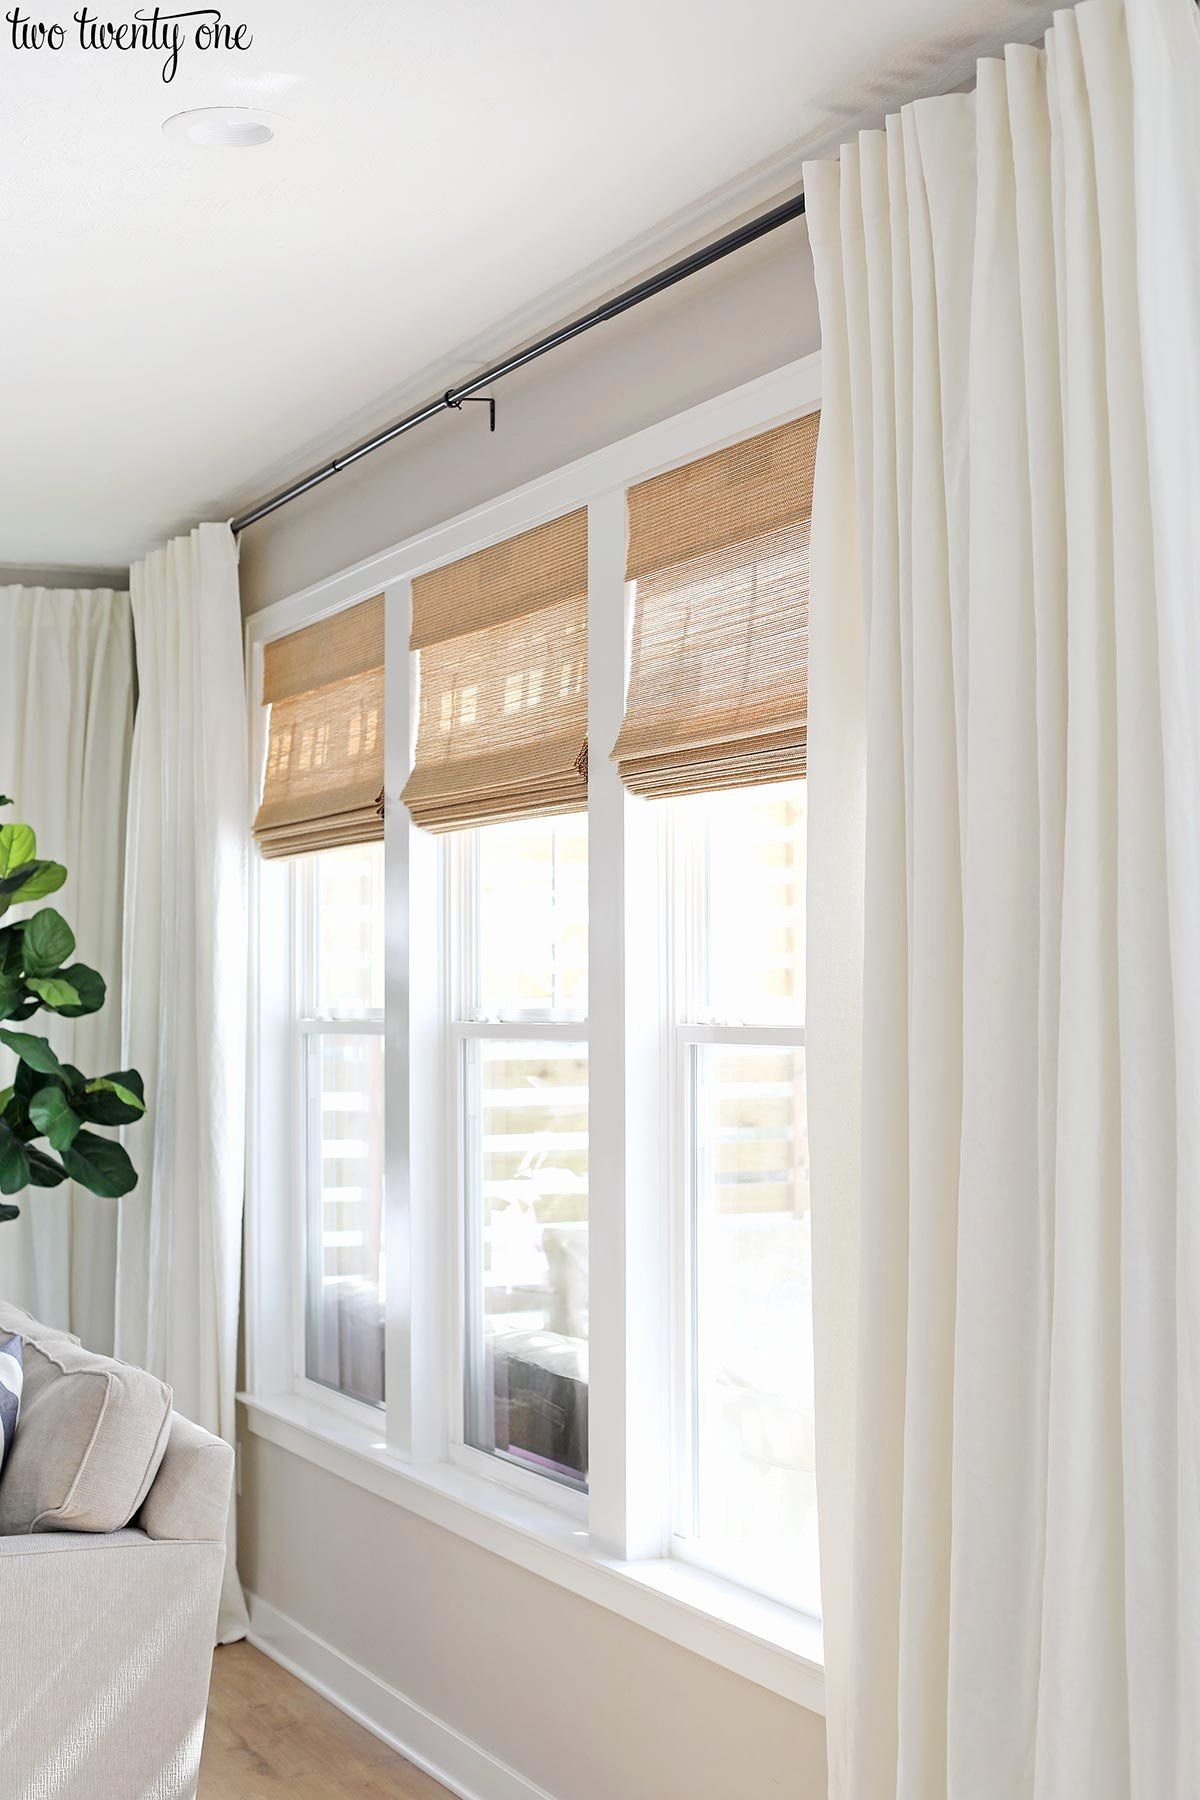 Casual Dining Room Window Treatments Awesome Bud Friendly Living Room Window Tre In 2020 Window Treatments Living Room Budget Friendly Living Room Living Room Windows